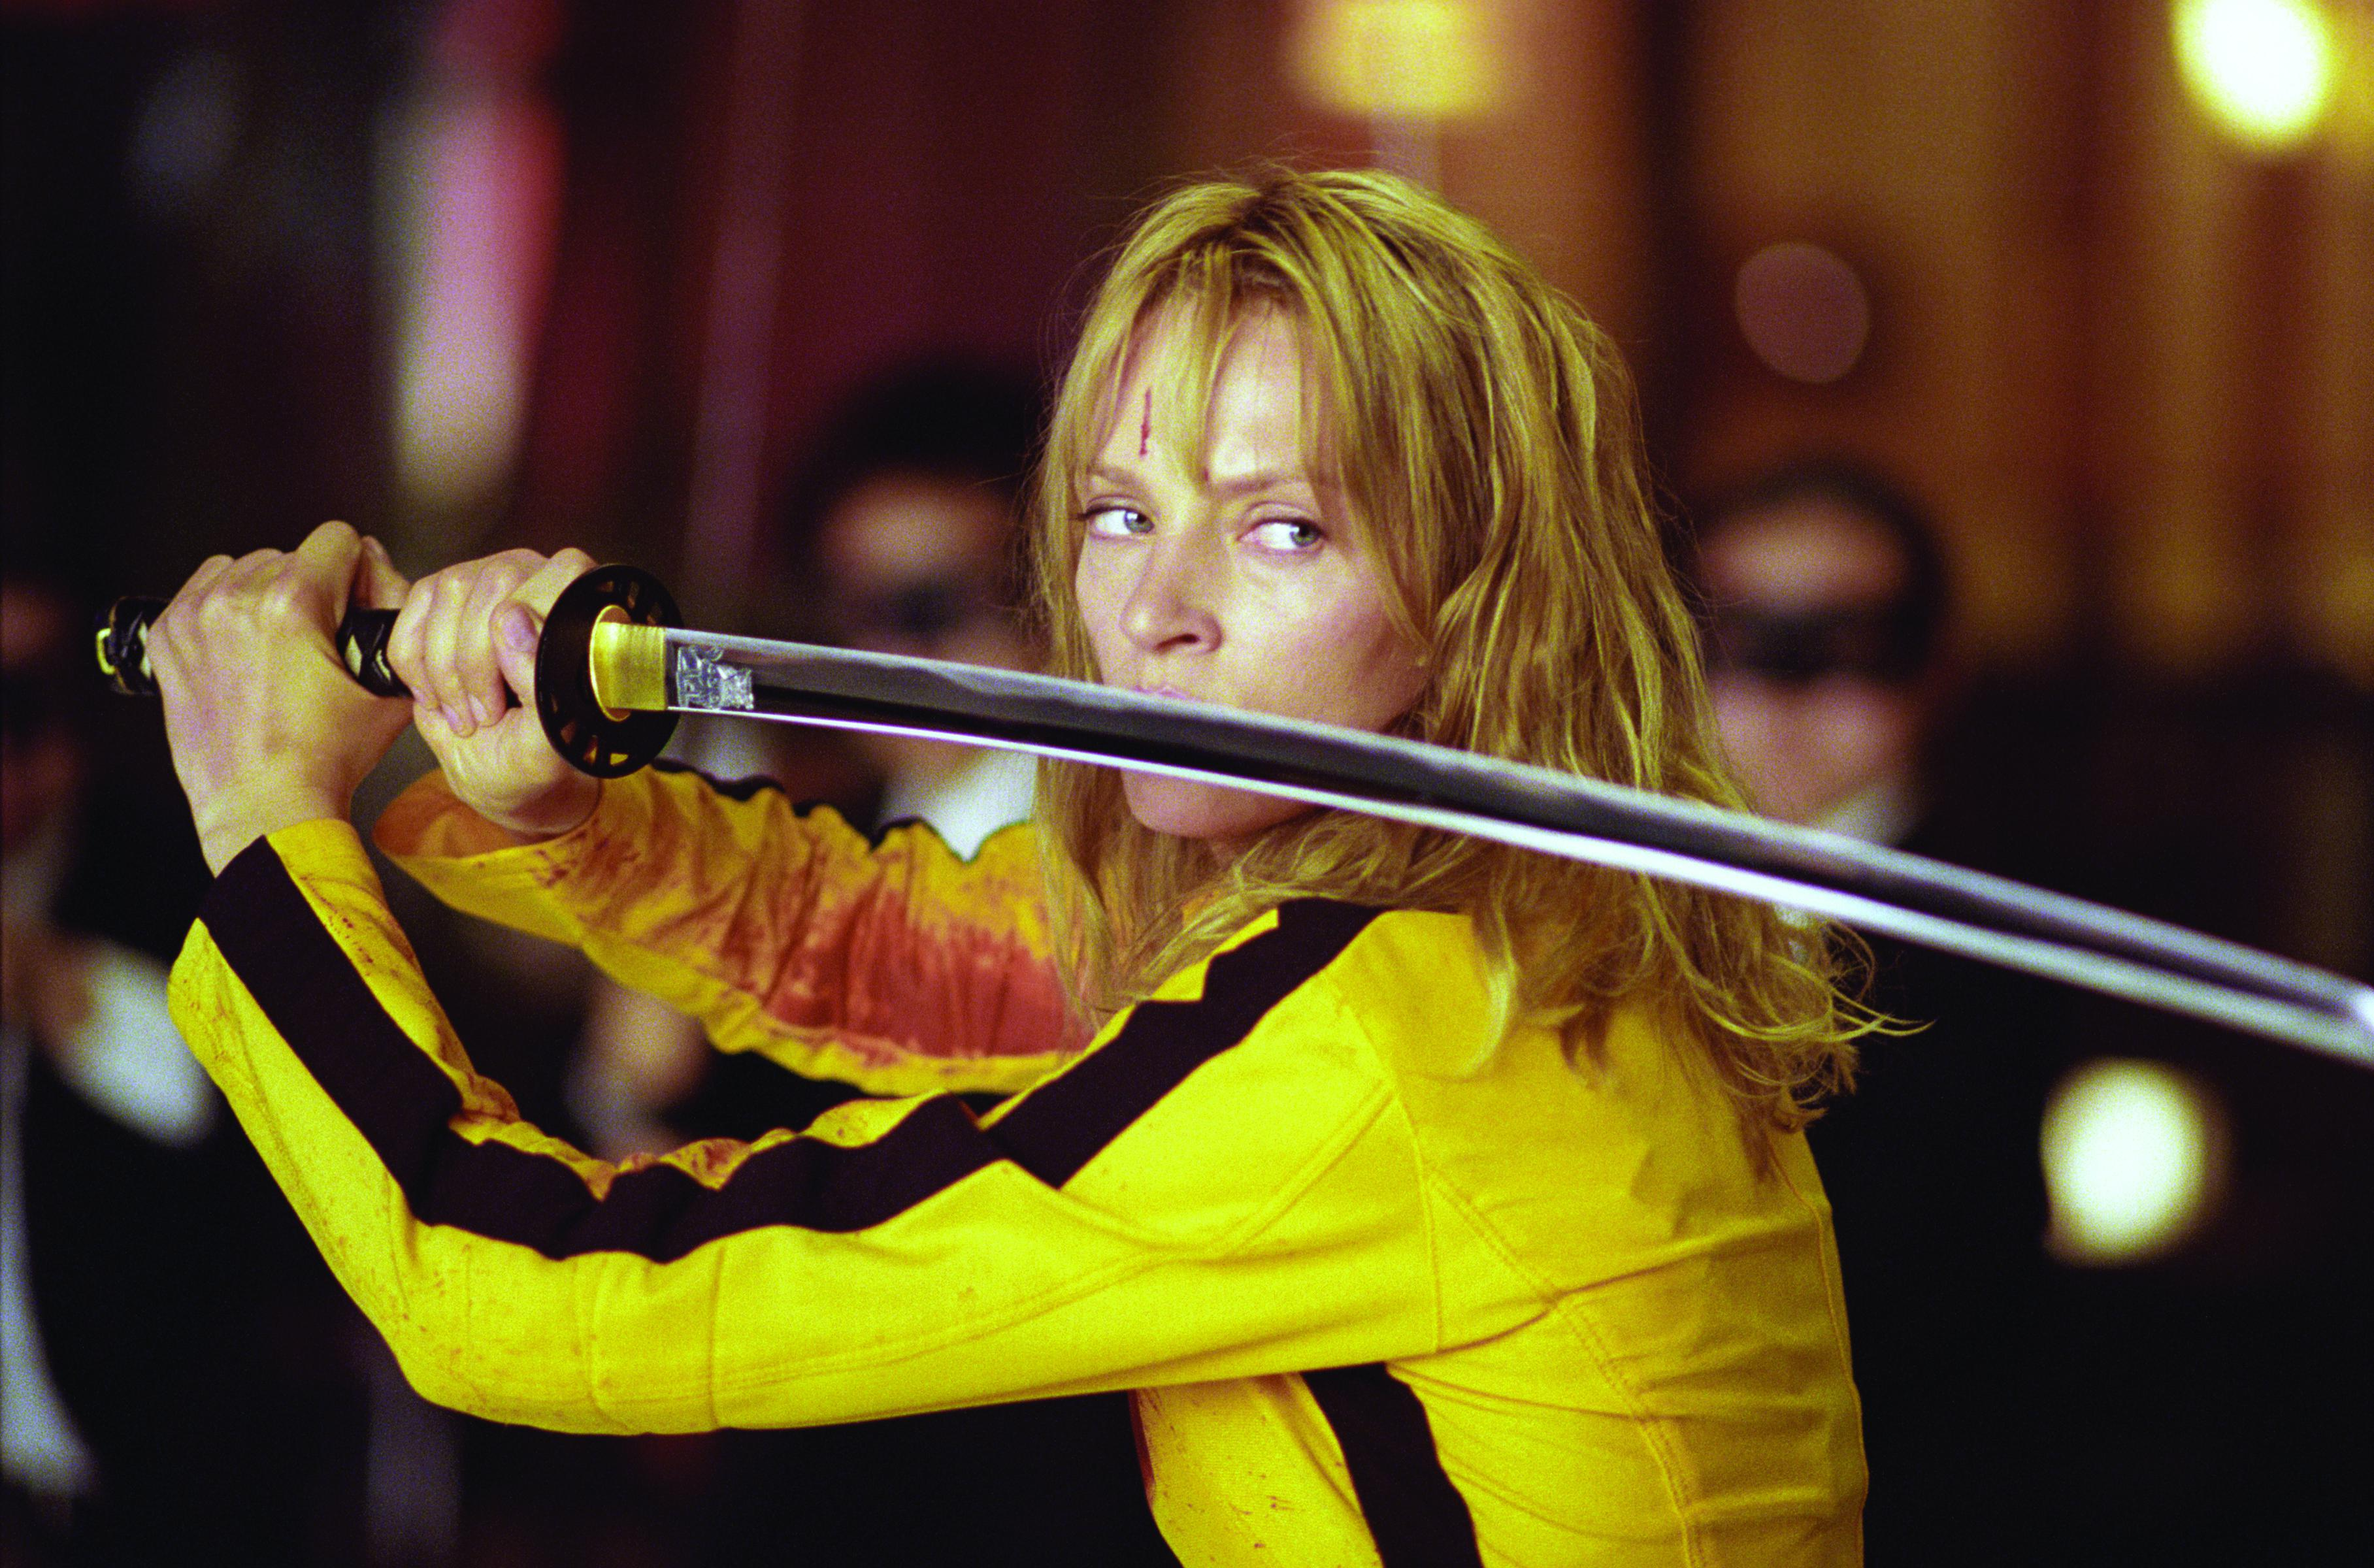 8 Quentin Tarantino Movies to Stream or Buy on Blu-Ray: 'Kill Bill,' 'Pulp Fiction,' and More